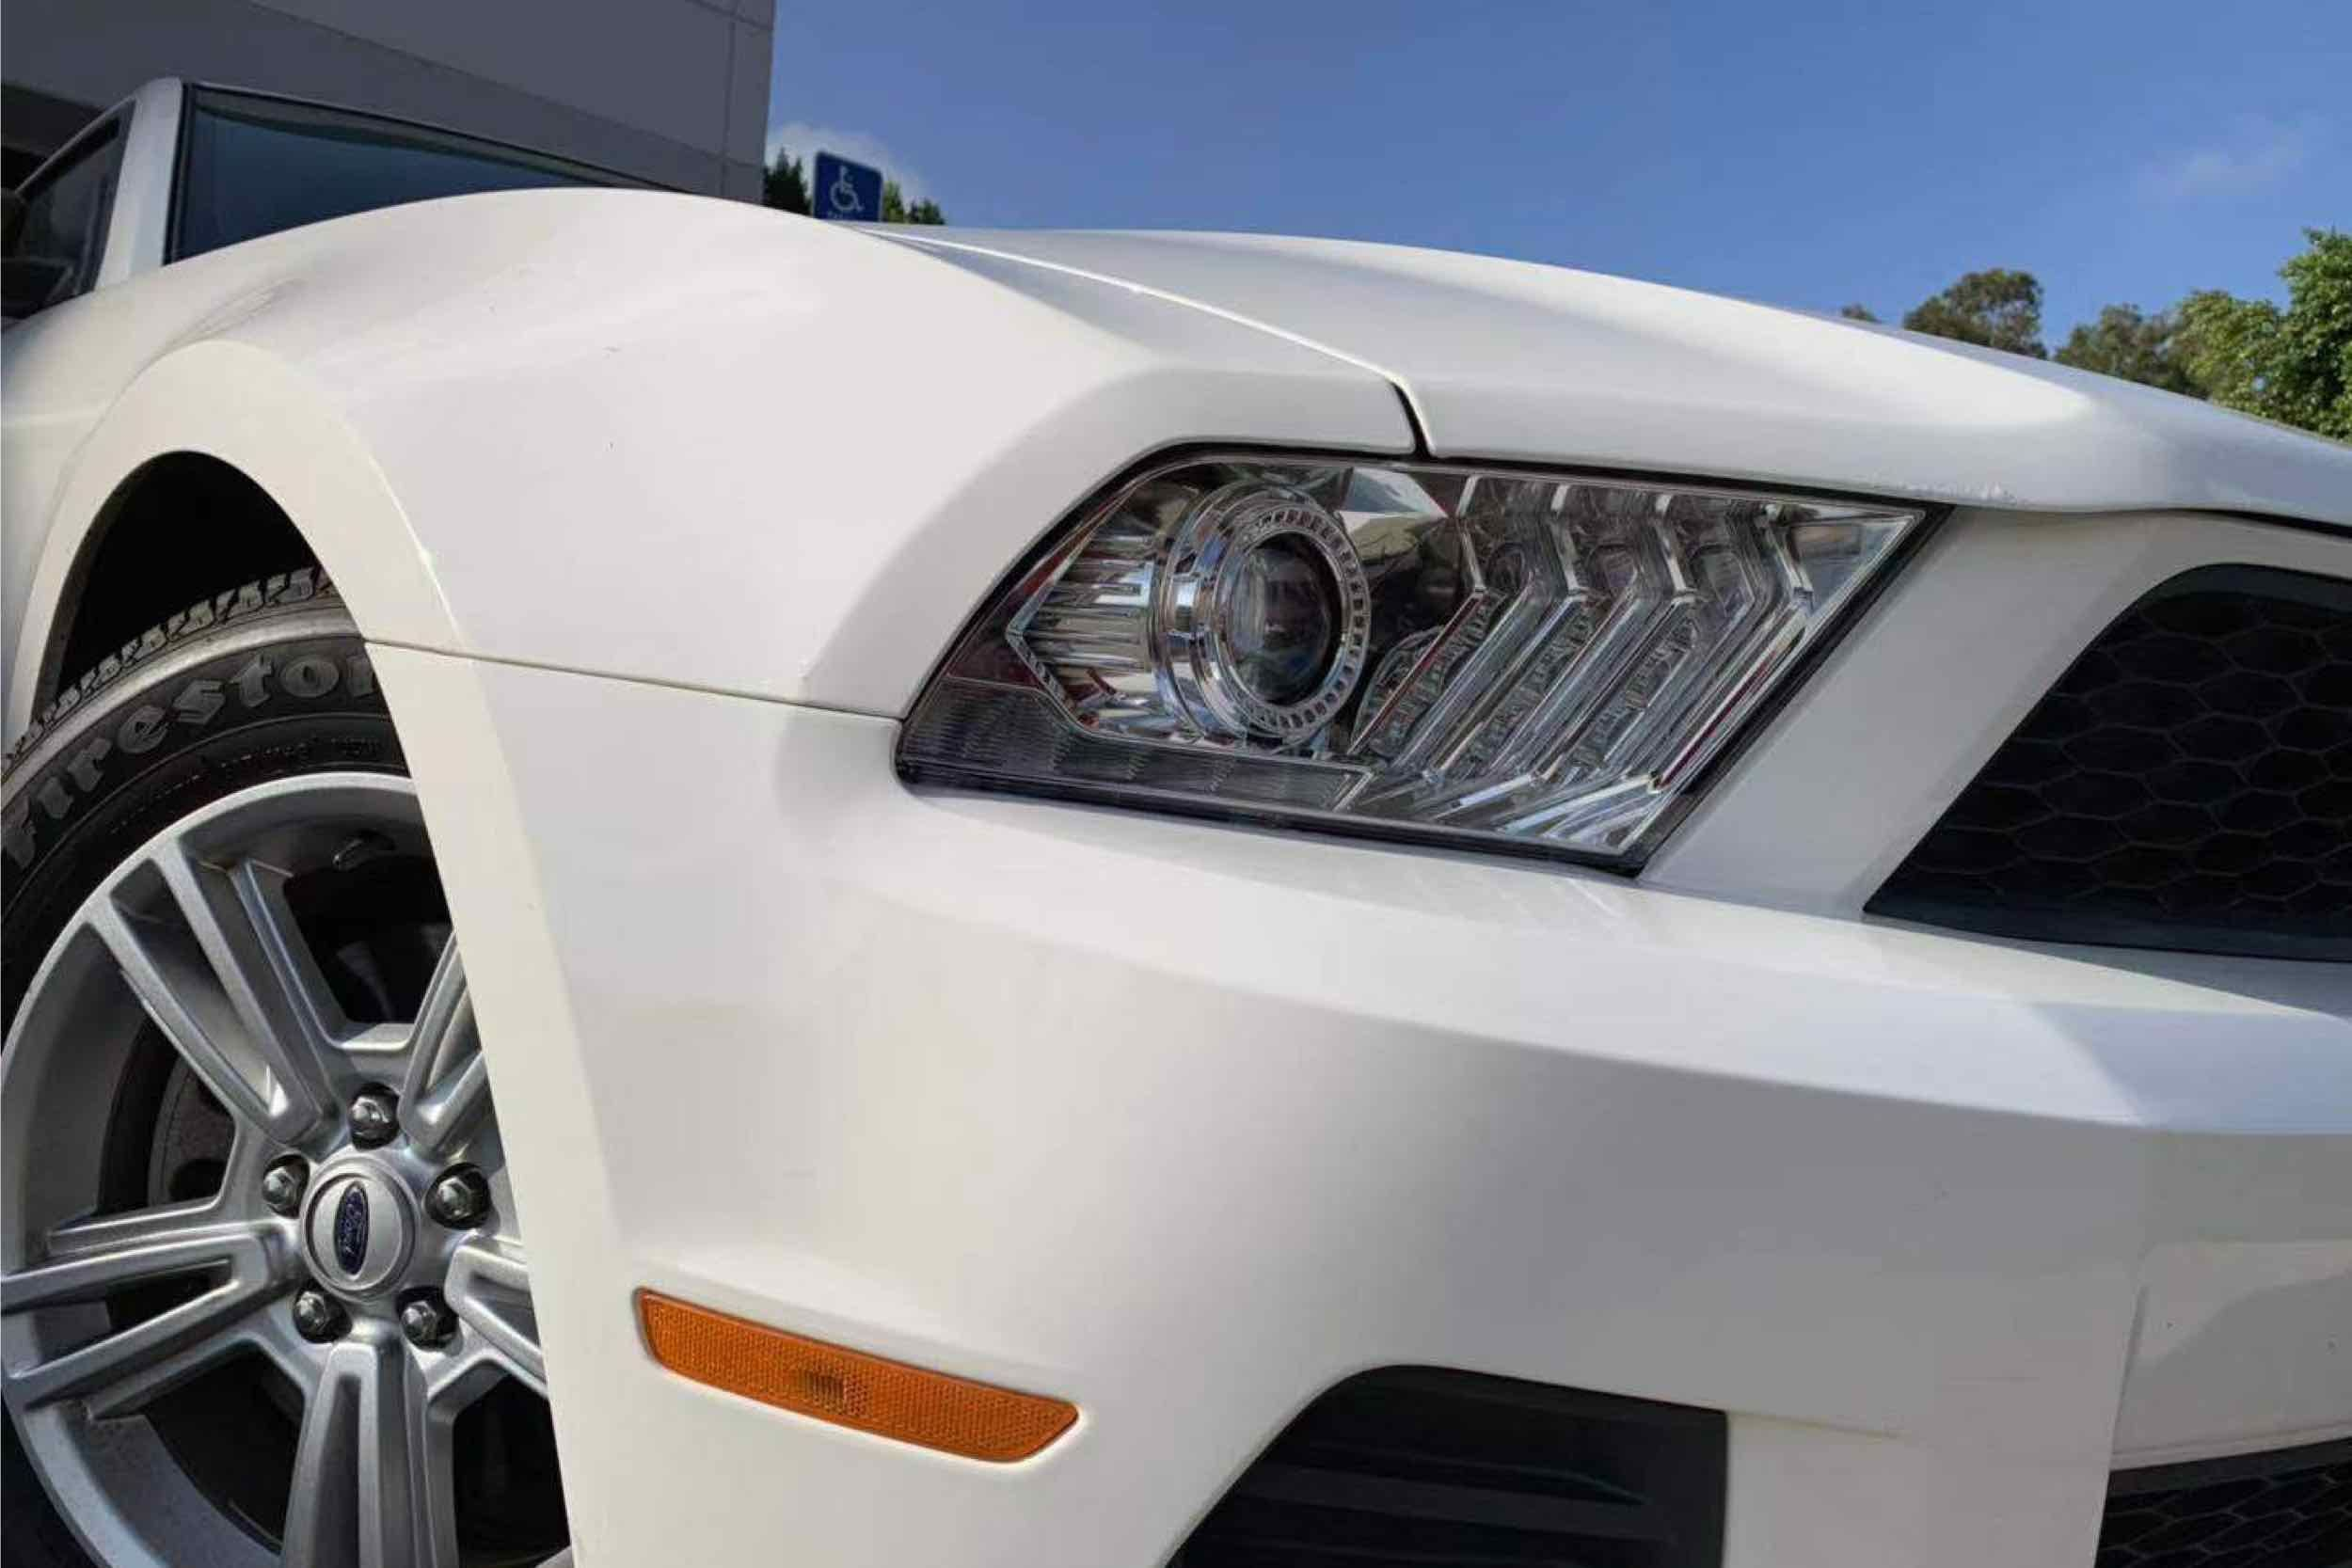 6th Gen Look Switchback DRL//Sequential Signal LED Tube Projector Headlights Black AlphaRex PRO-Series Chrome Fit 10-12 Ford Mustang Halogen Type